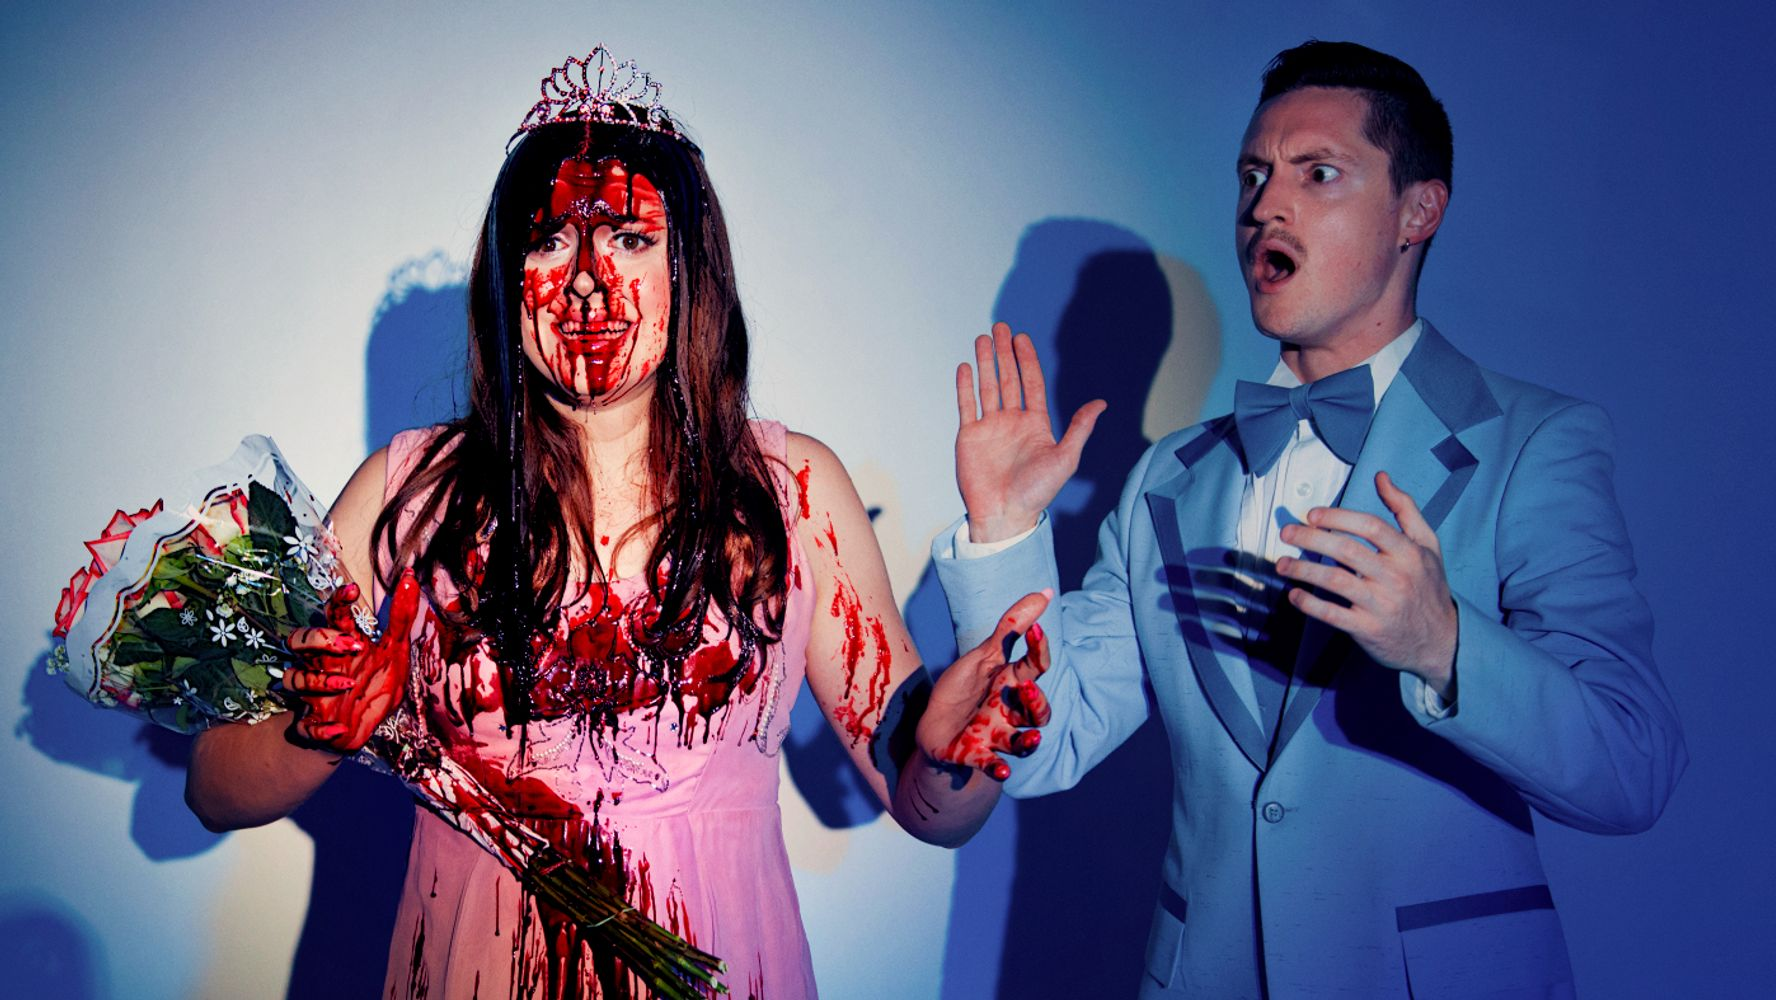 New York Pop Duo Gives Stephen King's 'Carrie' A Queer Inclusive Revamp